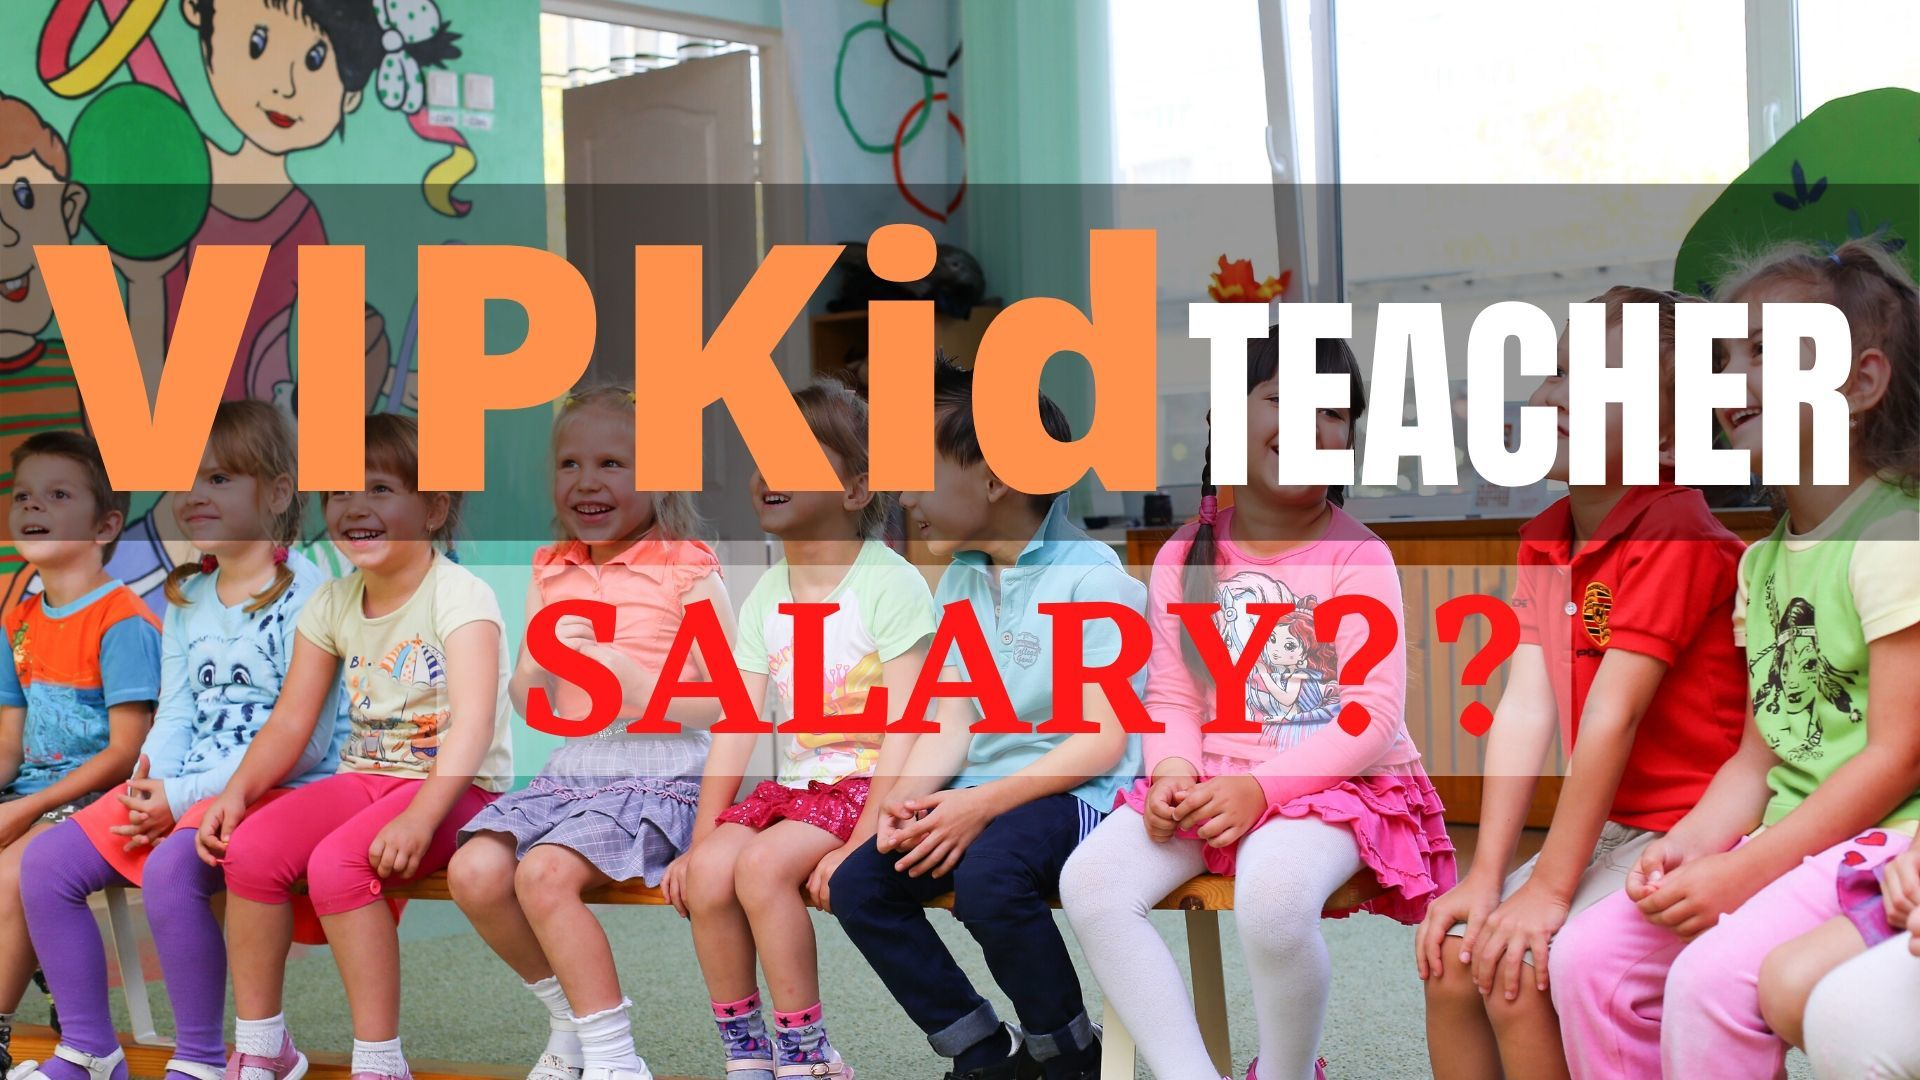 VIPKid teacher salary